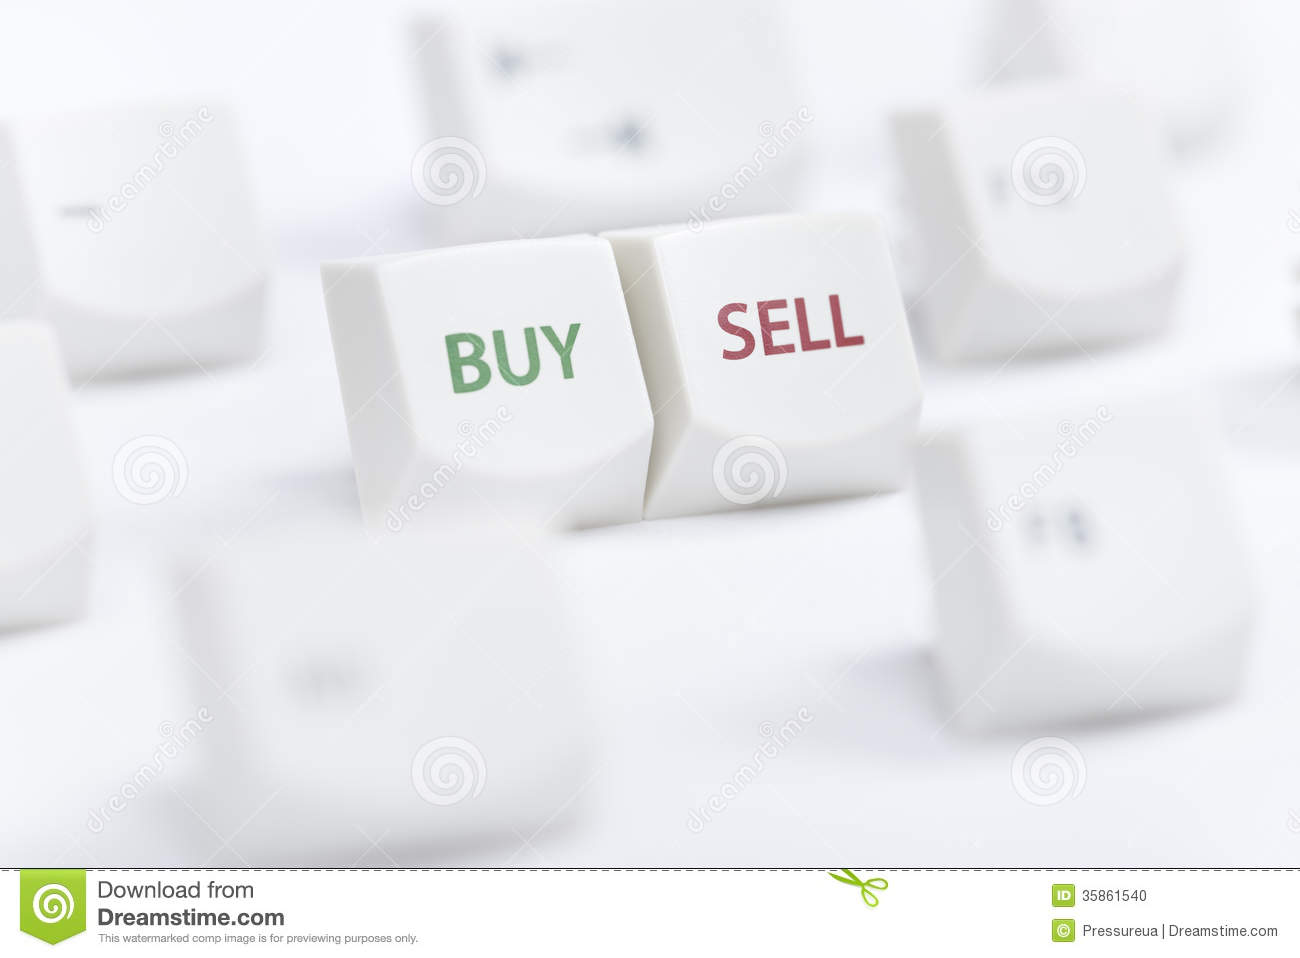 This Weeks Scamtastic RV/GCR News: 8/19-8/25 Buy-sell-concept-computer-keyboard-button-text-sign-white-background-35861540